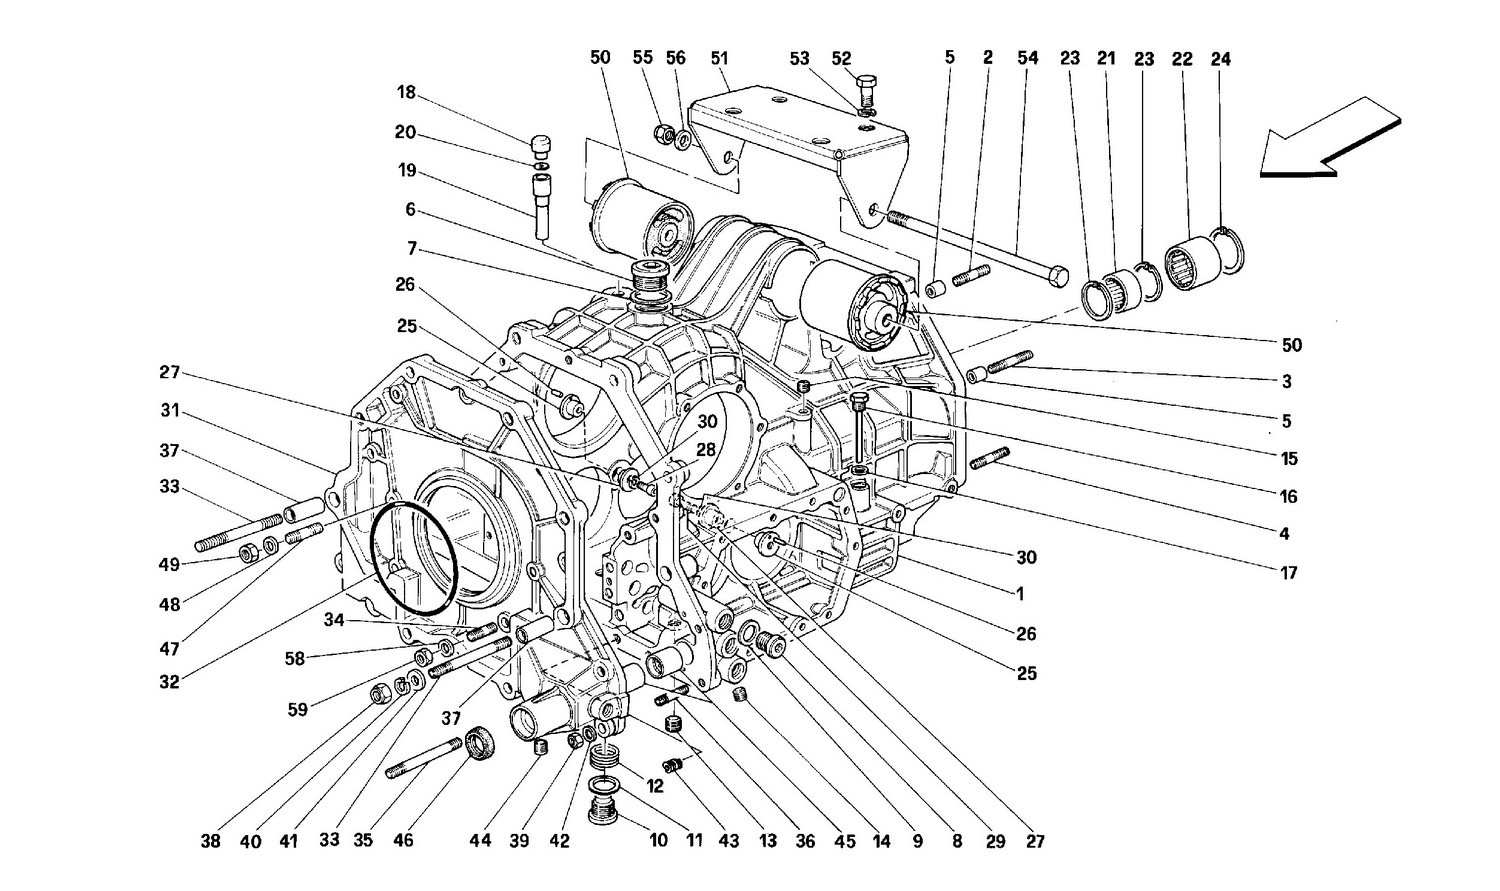 GEARBOX DIFFERENTIAL HOUSING AND INTERMEDIATE CASING